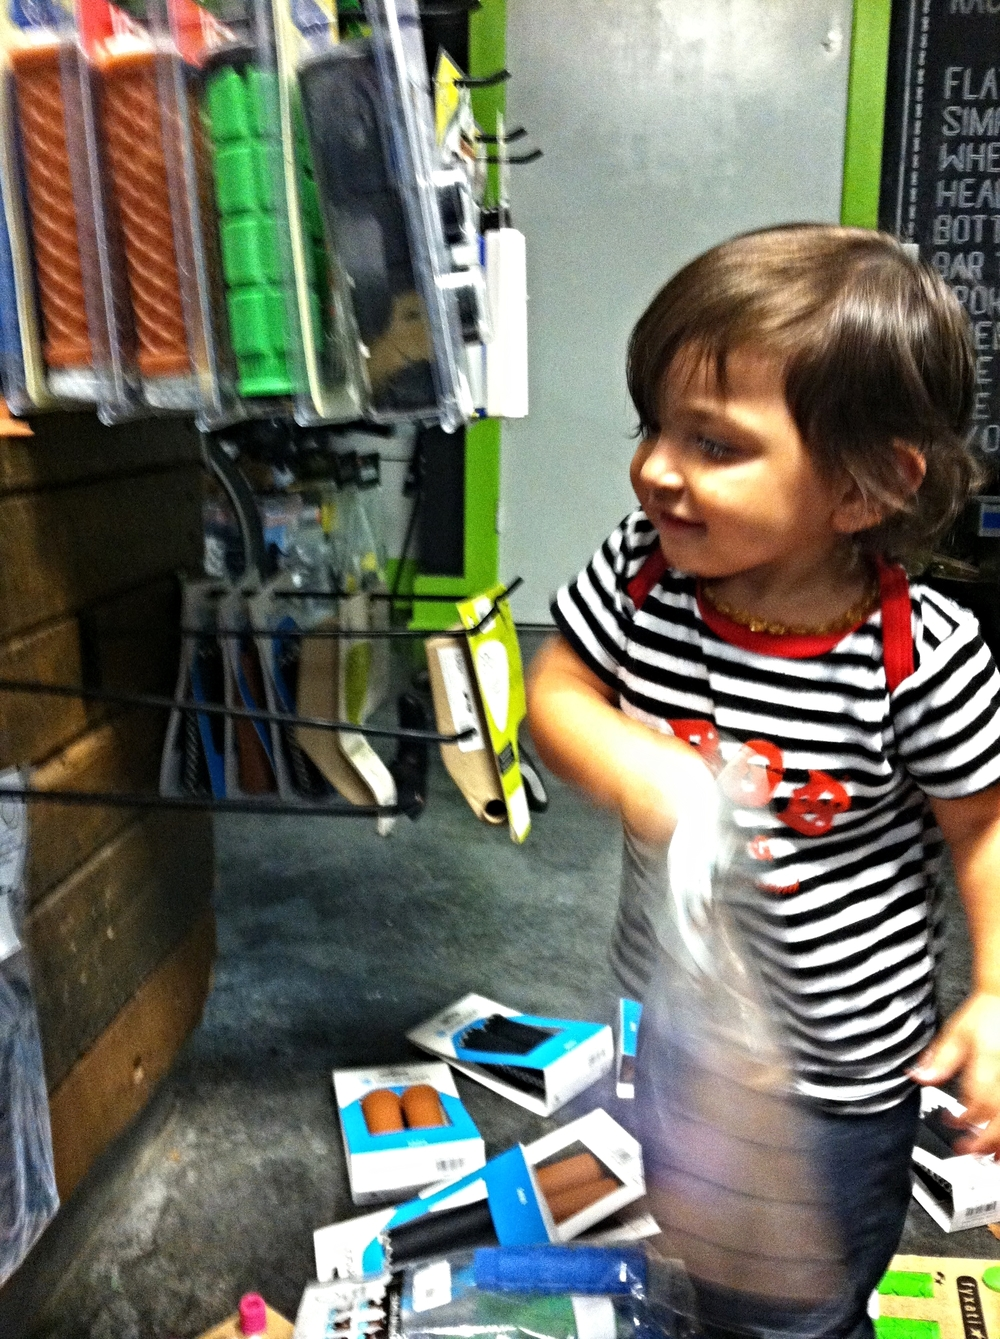 Just another day of hanging out and tearing down the bike shop with Richie's daughter, Ava.